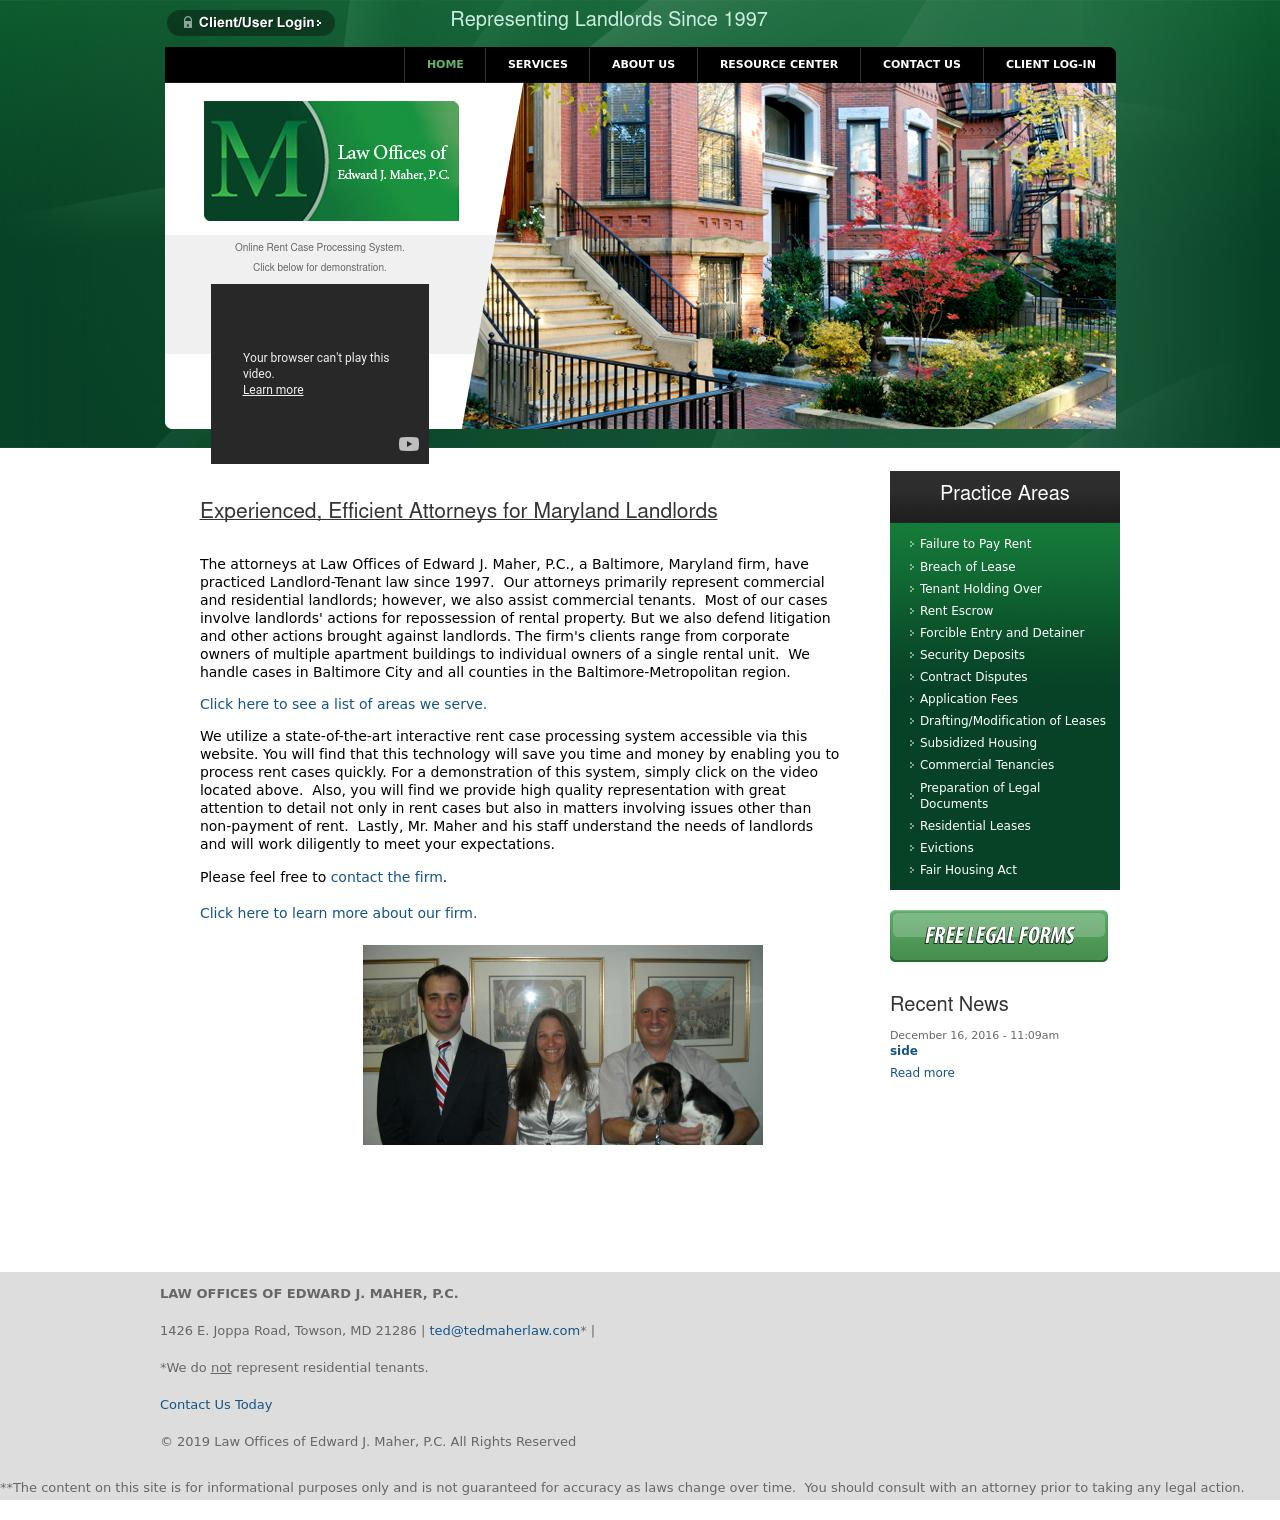 Law Offices of Edward J. Maher, P.C. - Baltimore MD Lawyers